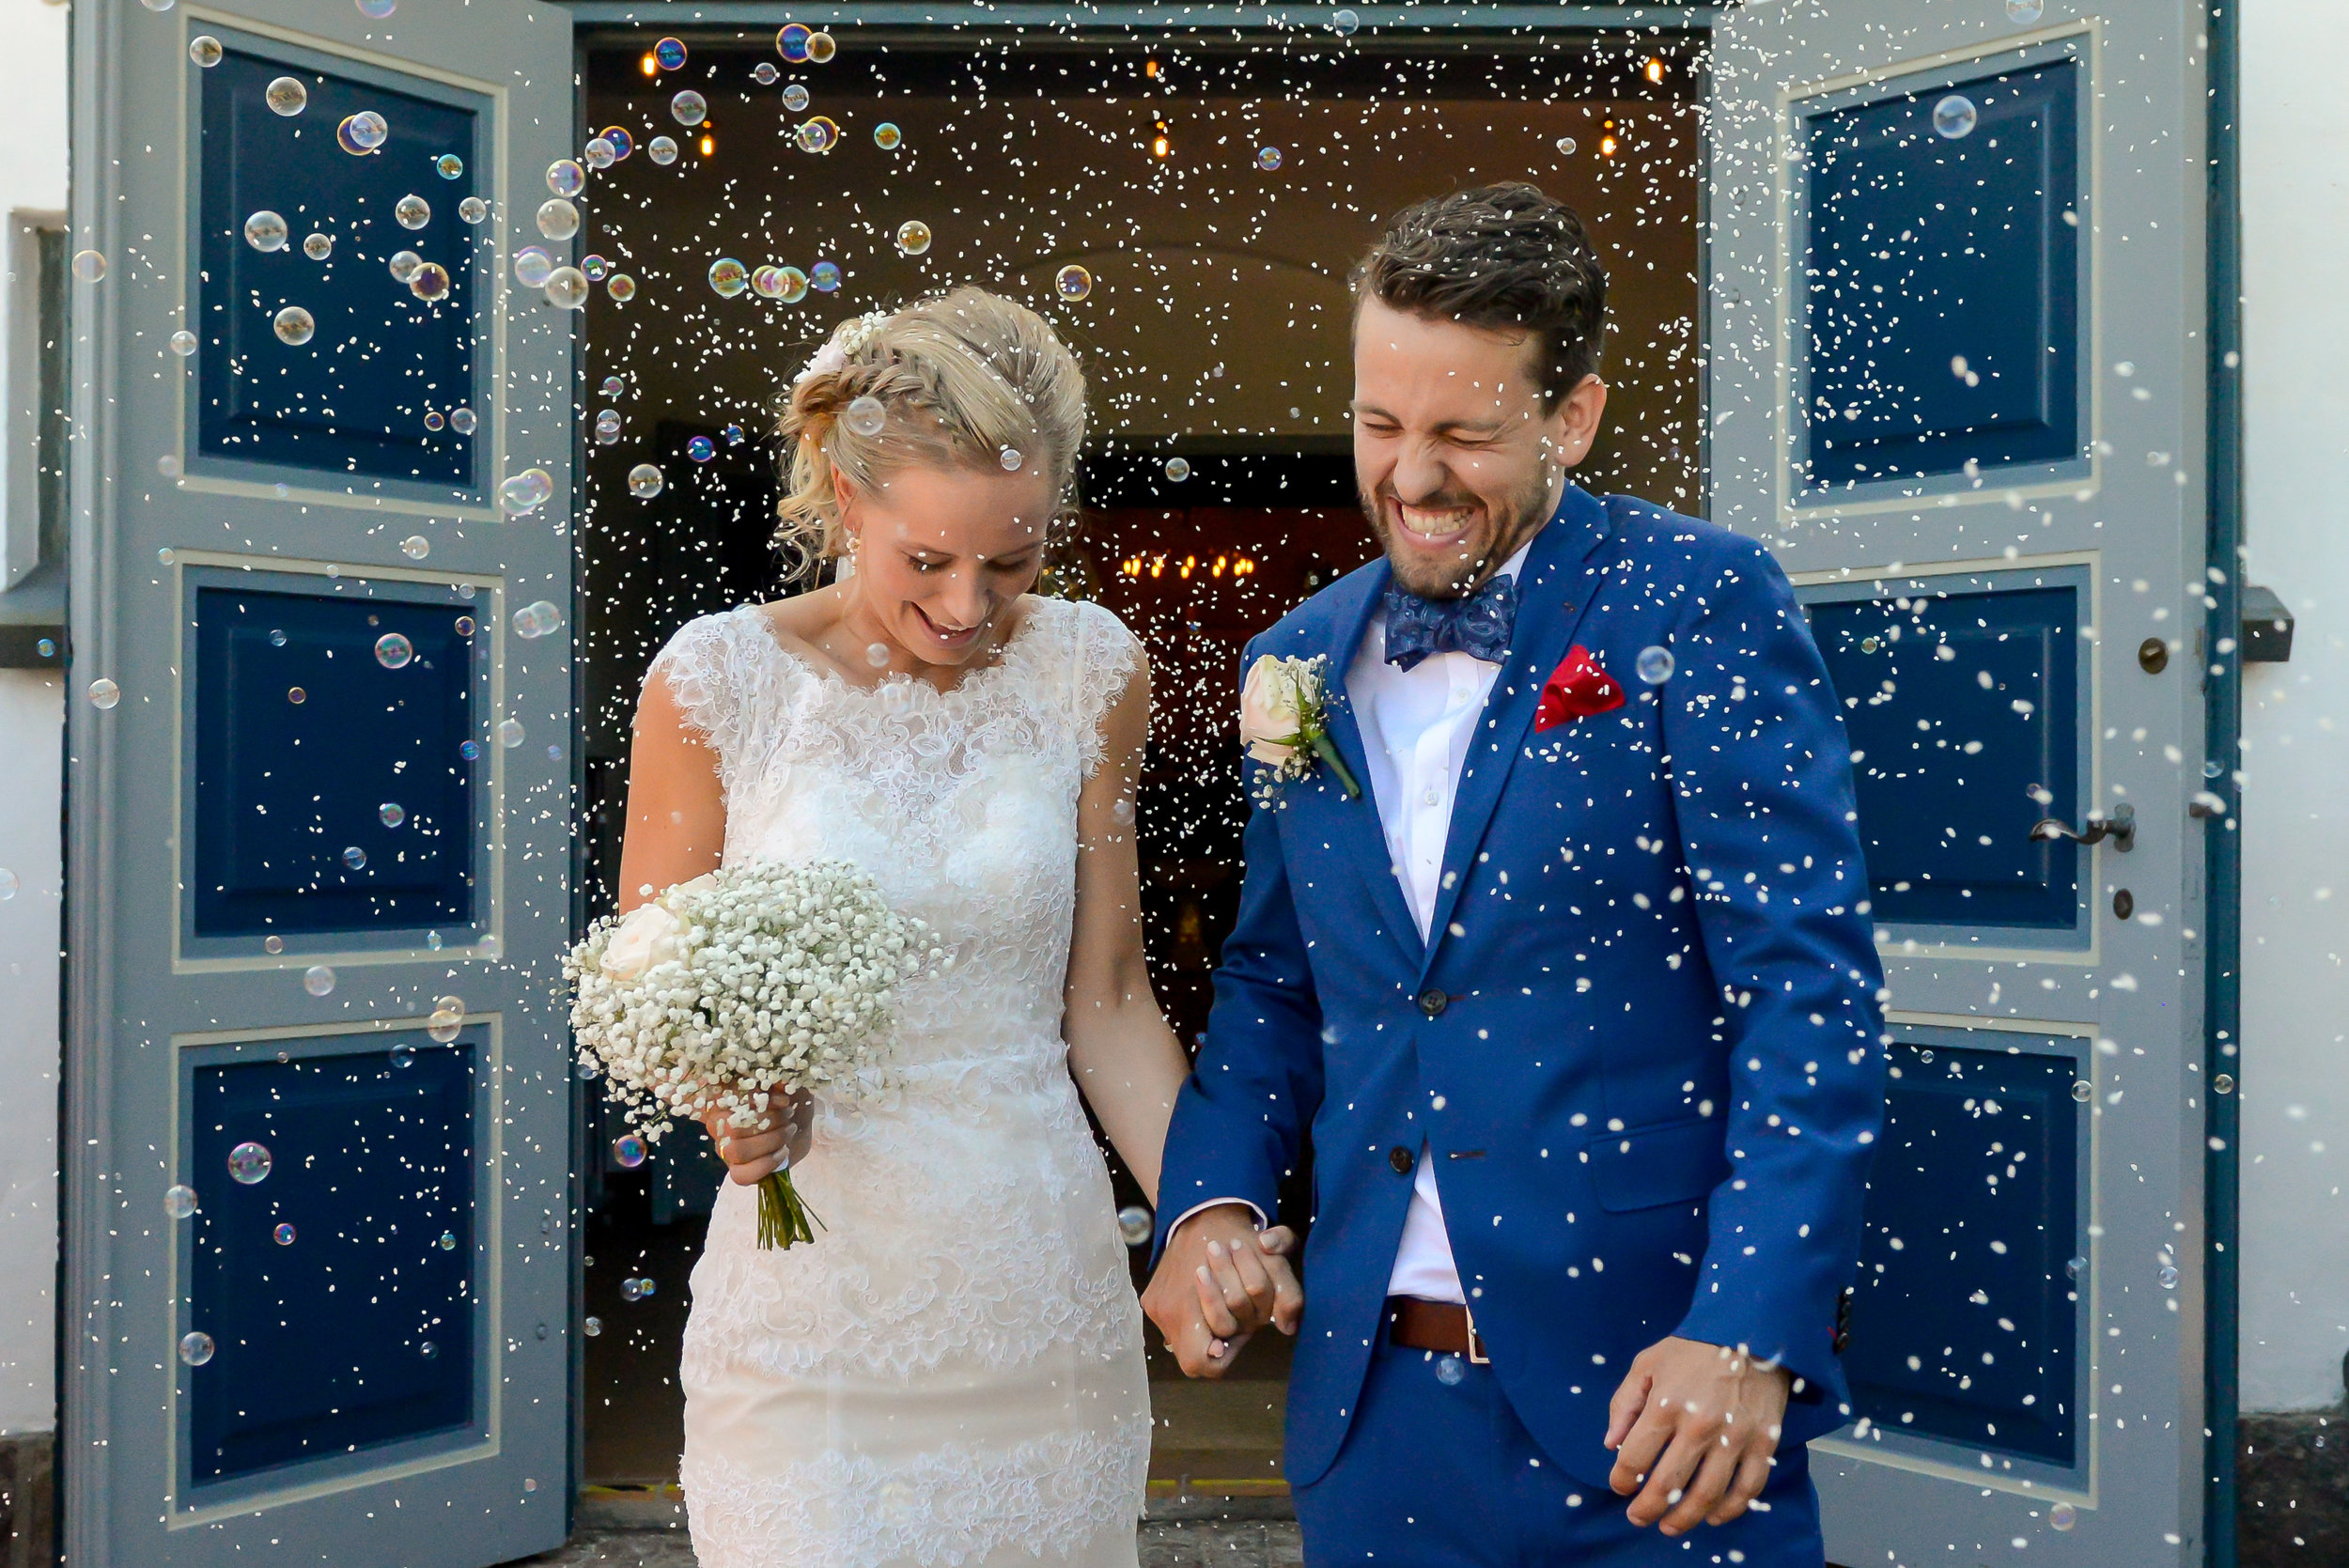 - Thank you Pernille, for the most beautiful wedding photos. We are so happy and satisfied with them. Pernille was really listening to our wishes and fulfilled them very much. We will definitely recommend her as out wedding photographer! - Louise & Mathias